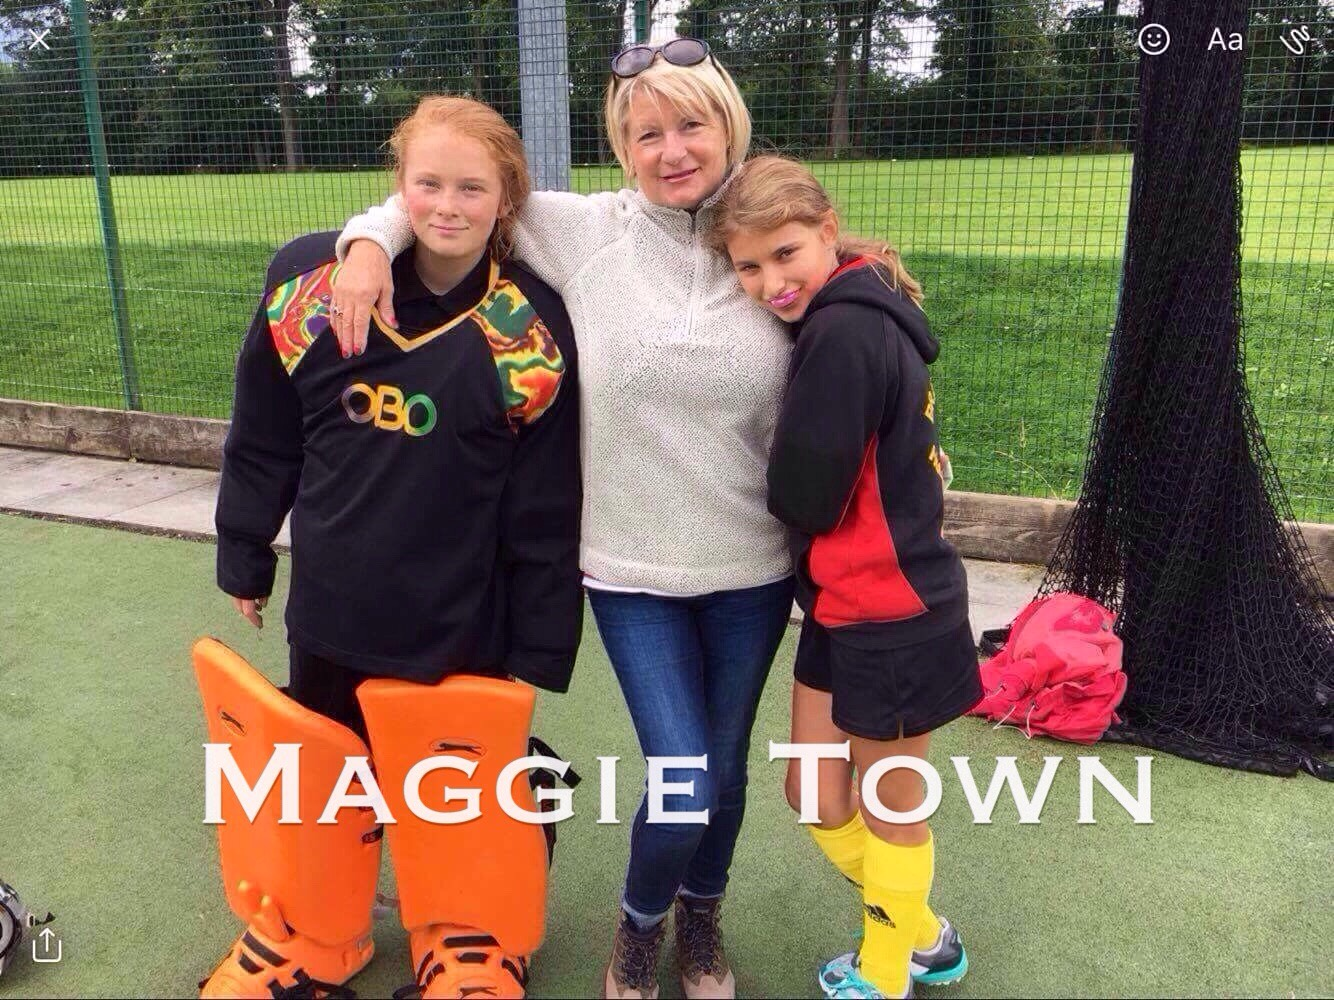 Maggie Town